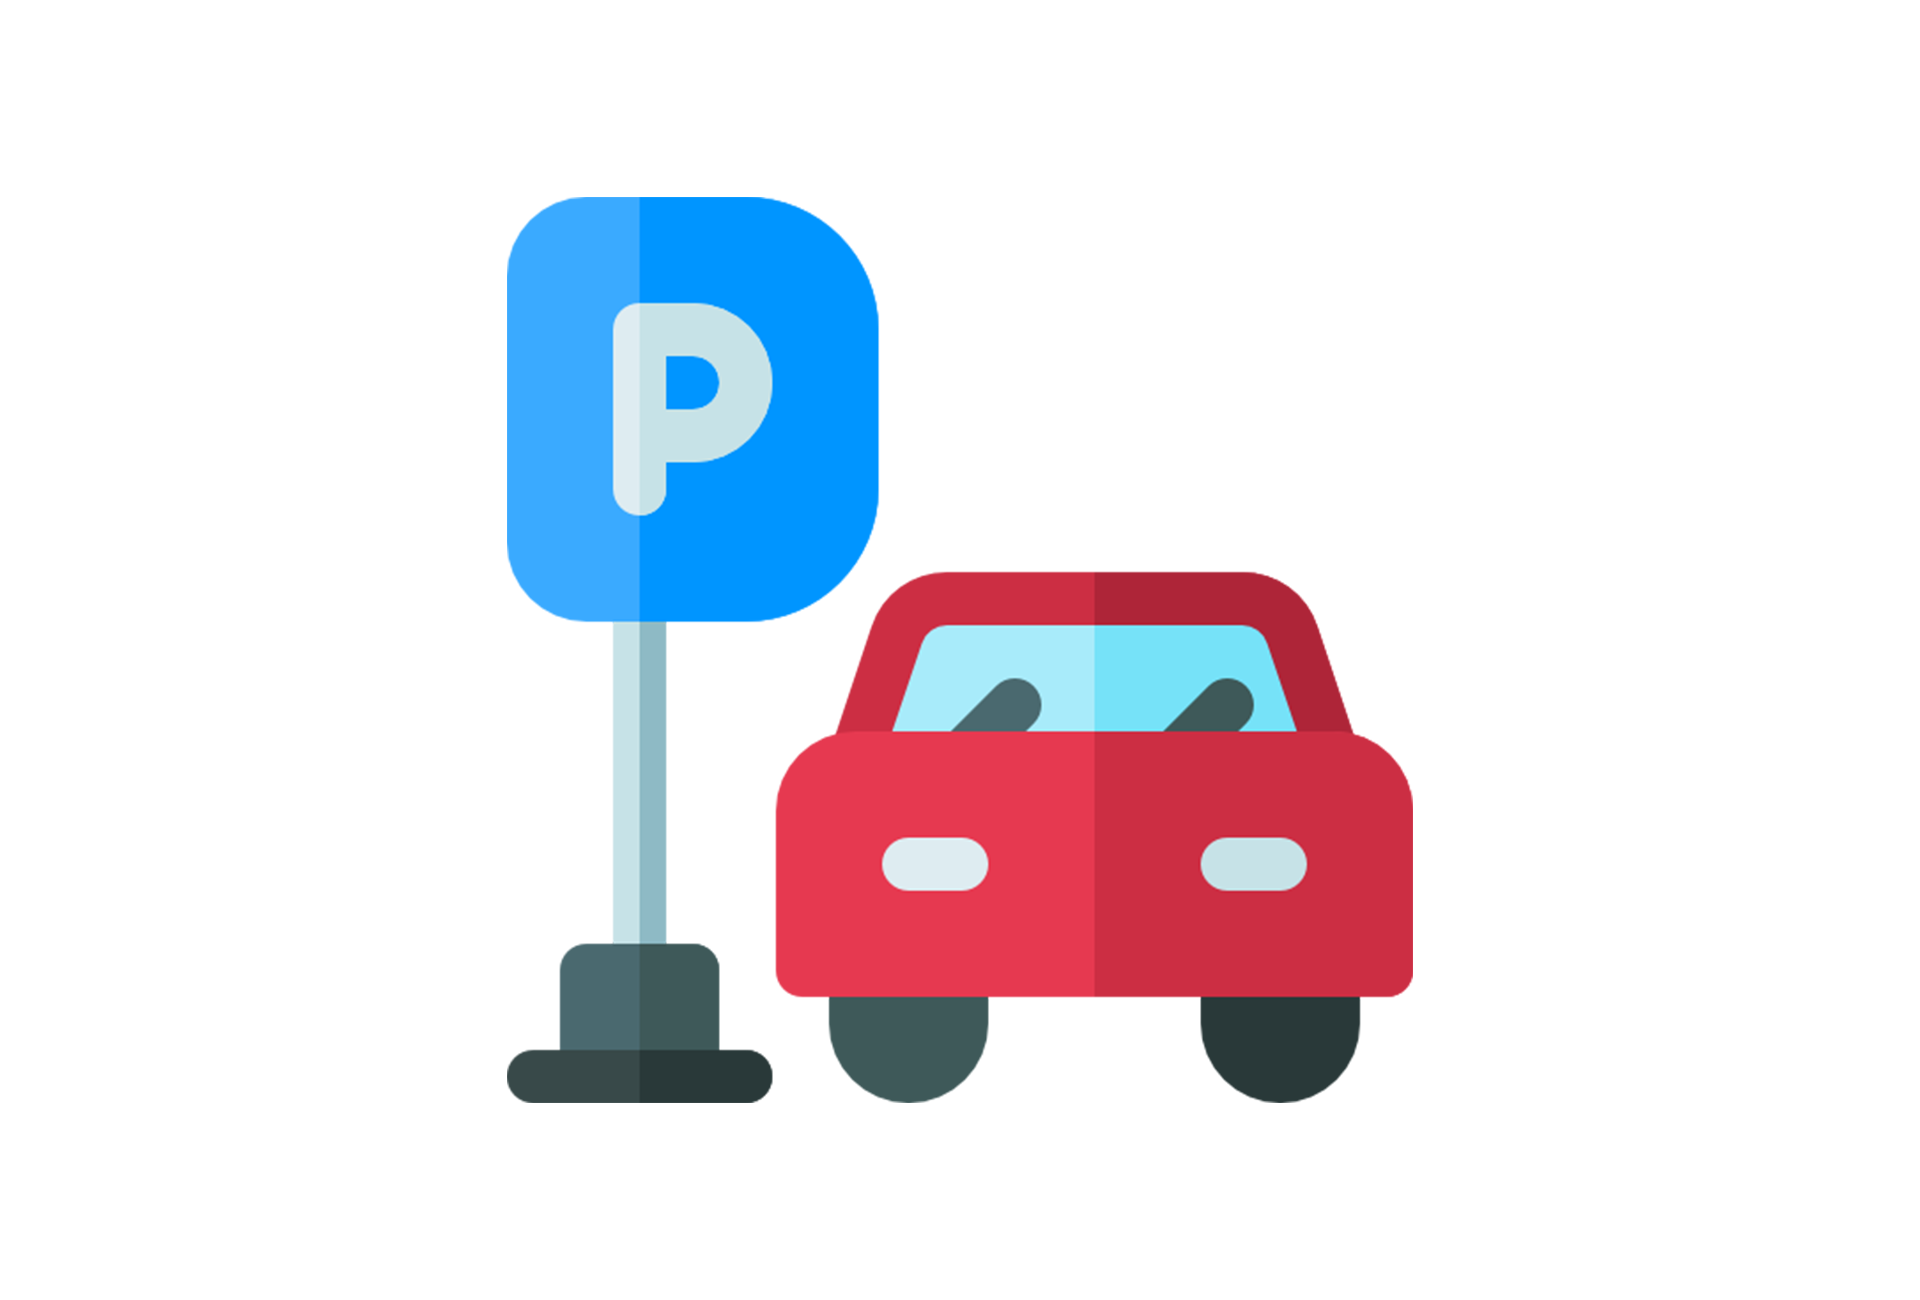 Parking - We have 580 parking spaces in the church's parking lot, but if for some reason you can't find a spot, overflow parking is available across the street at HGS (3100 Temple) and Popp Russo Leno (2861 Temple).